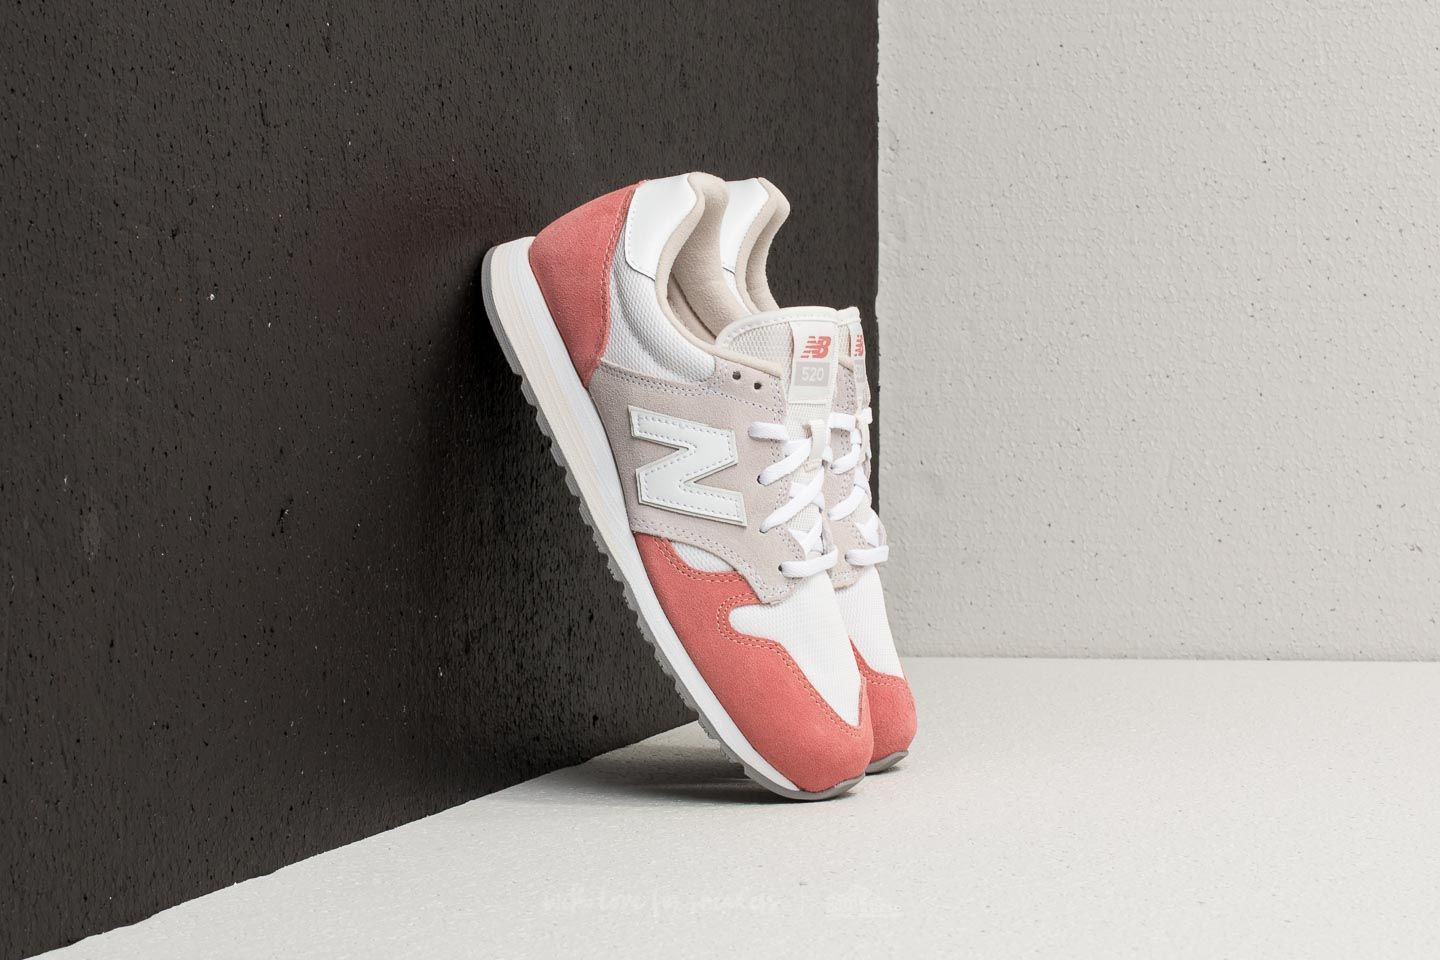 New Balance 520 Dusted Peach/ White